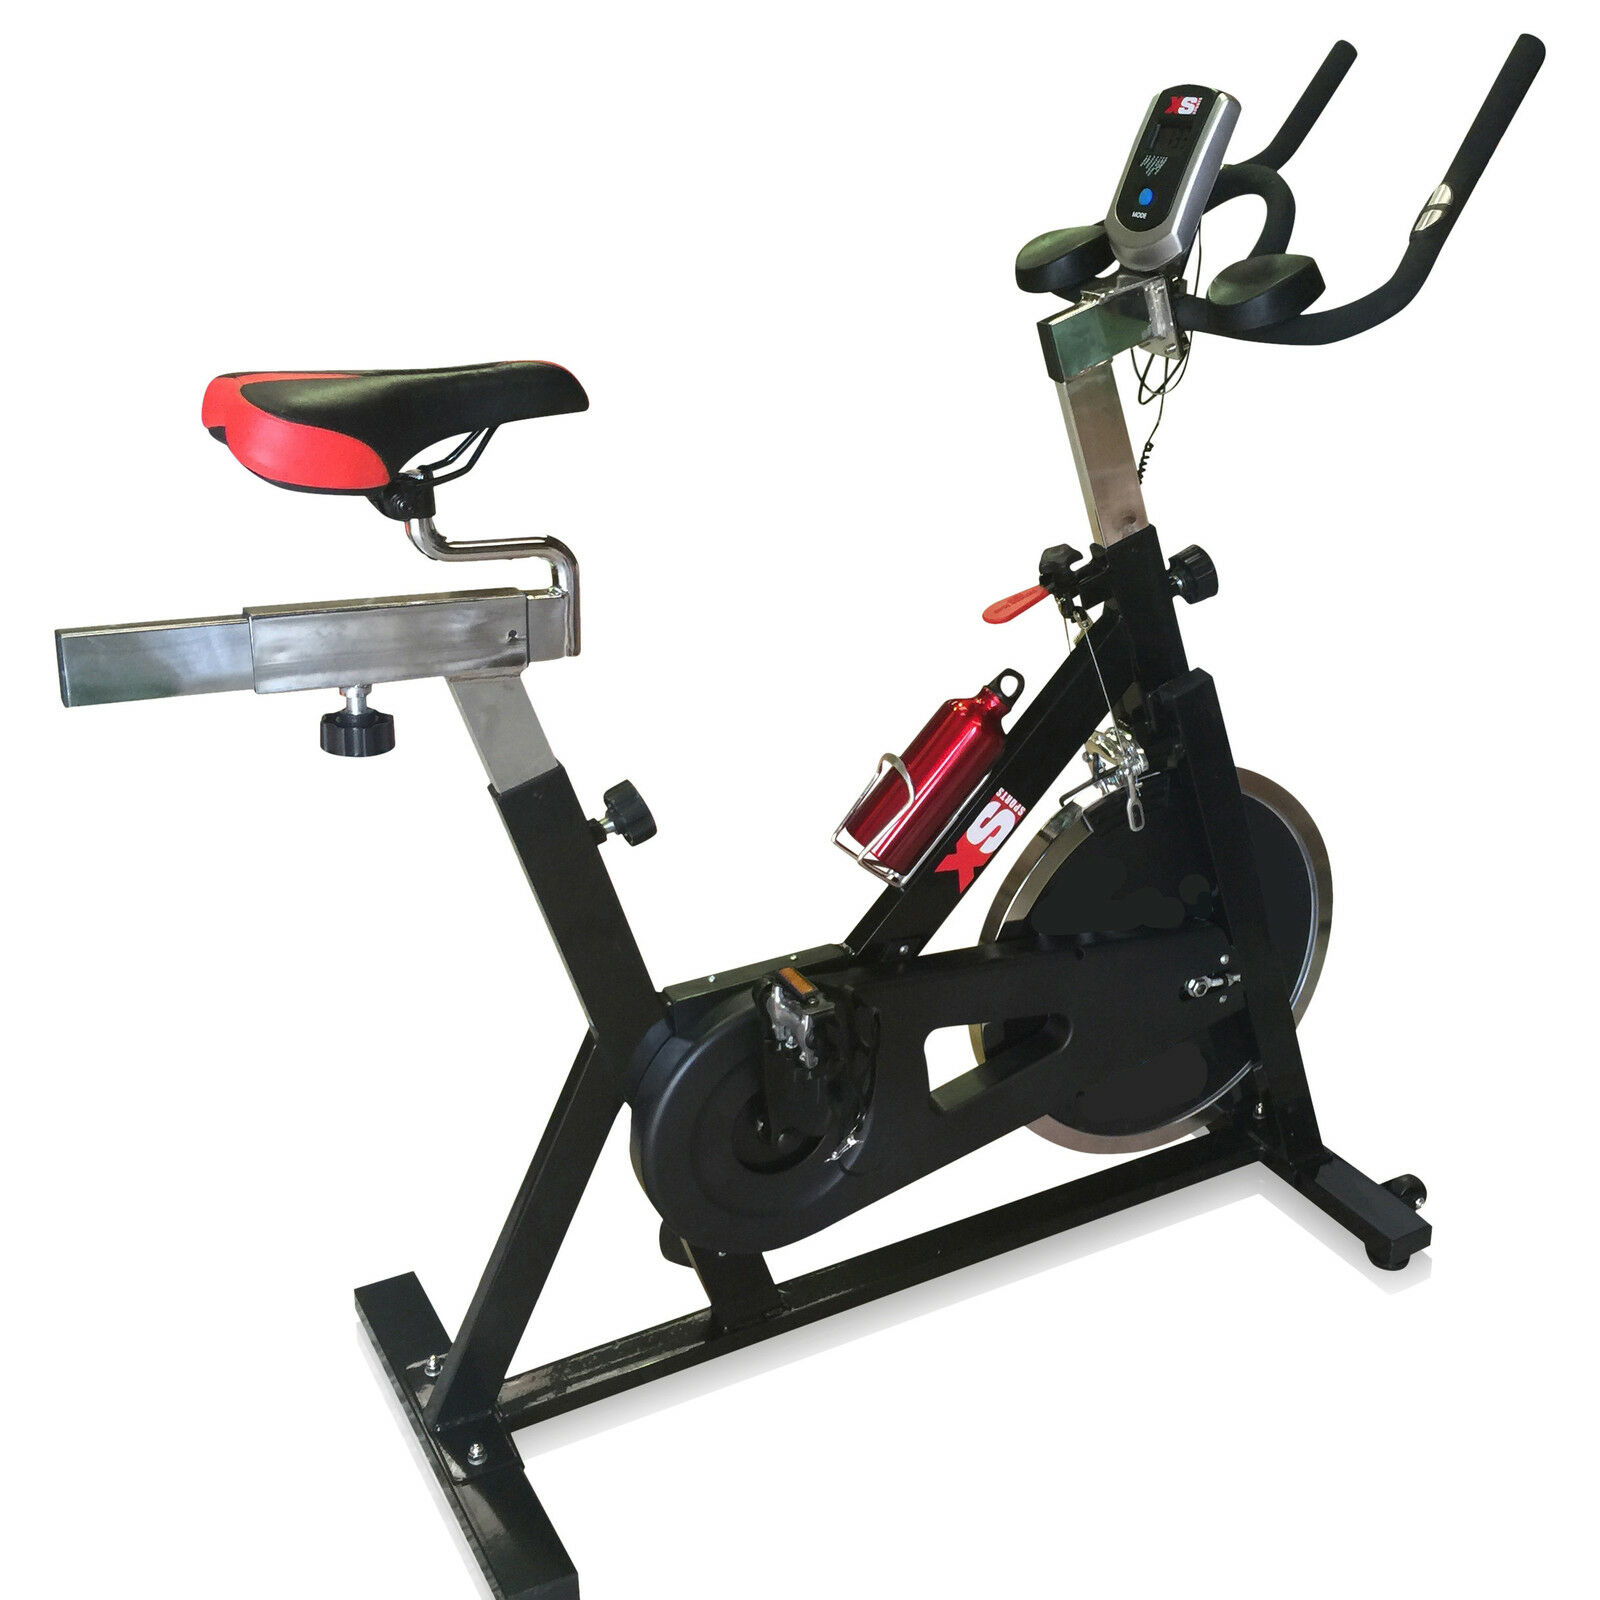 Exercise Bike Next Day Delivery: PRO EXERCISE SPIN BIKE TRAINING FITNESS CARDIO WORKOUT